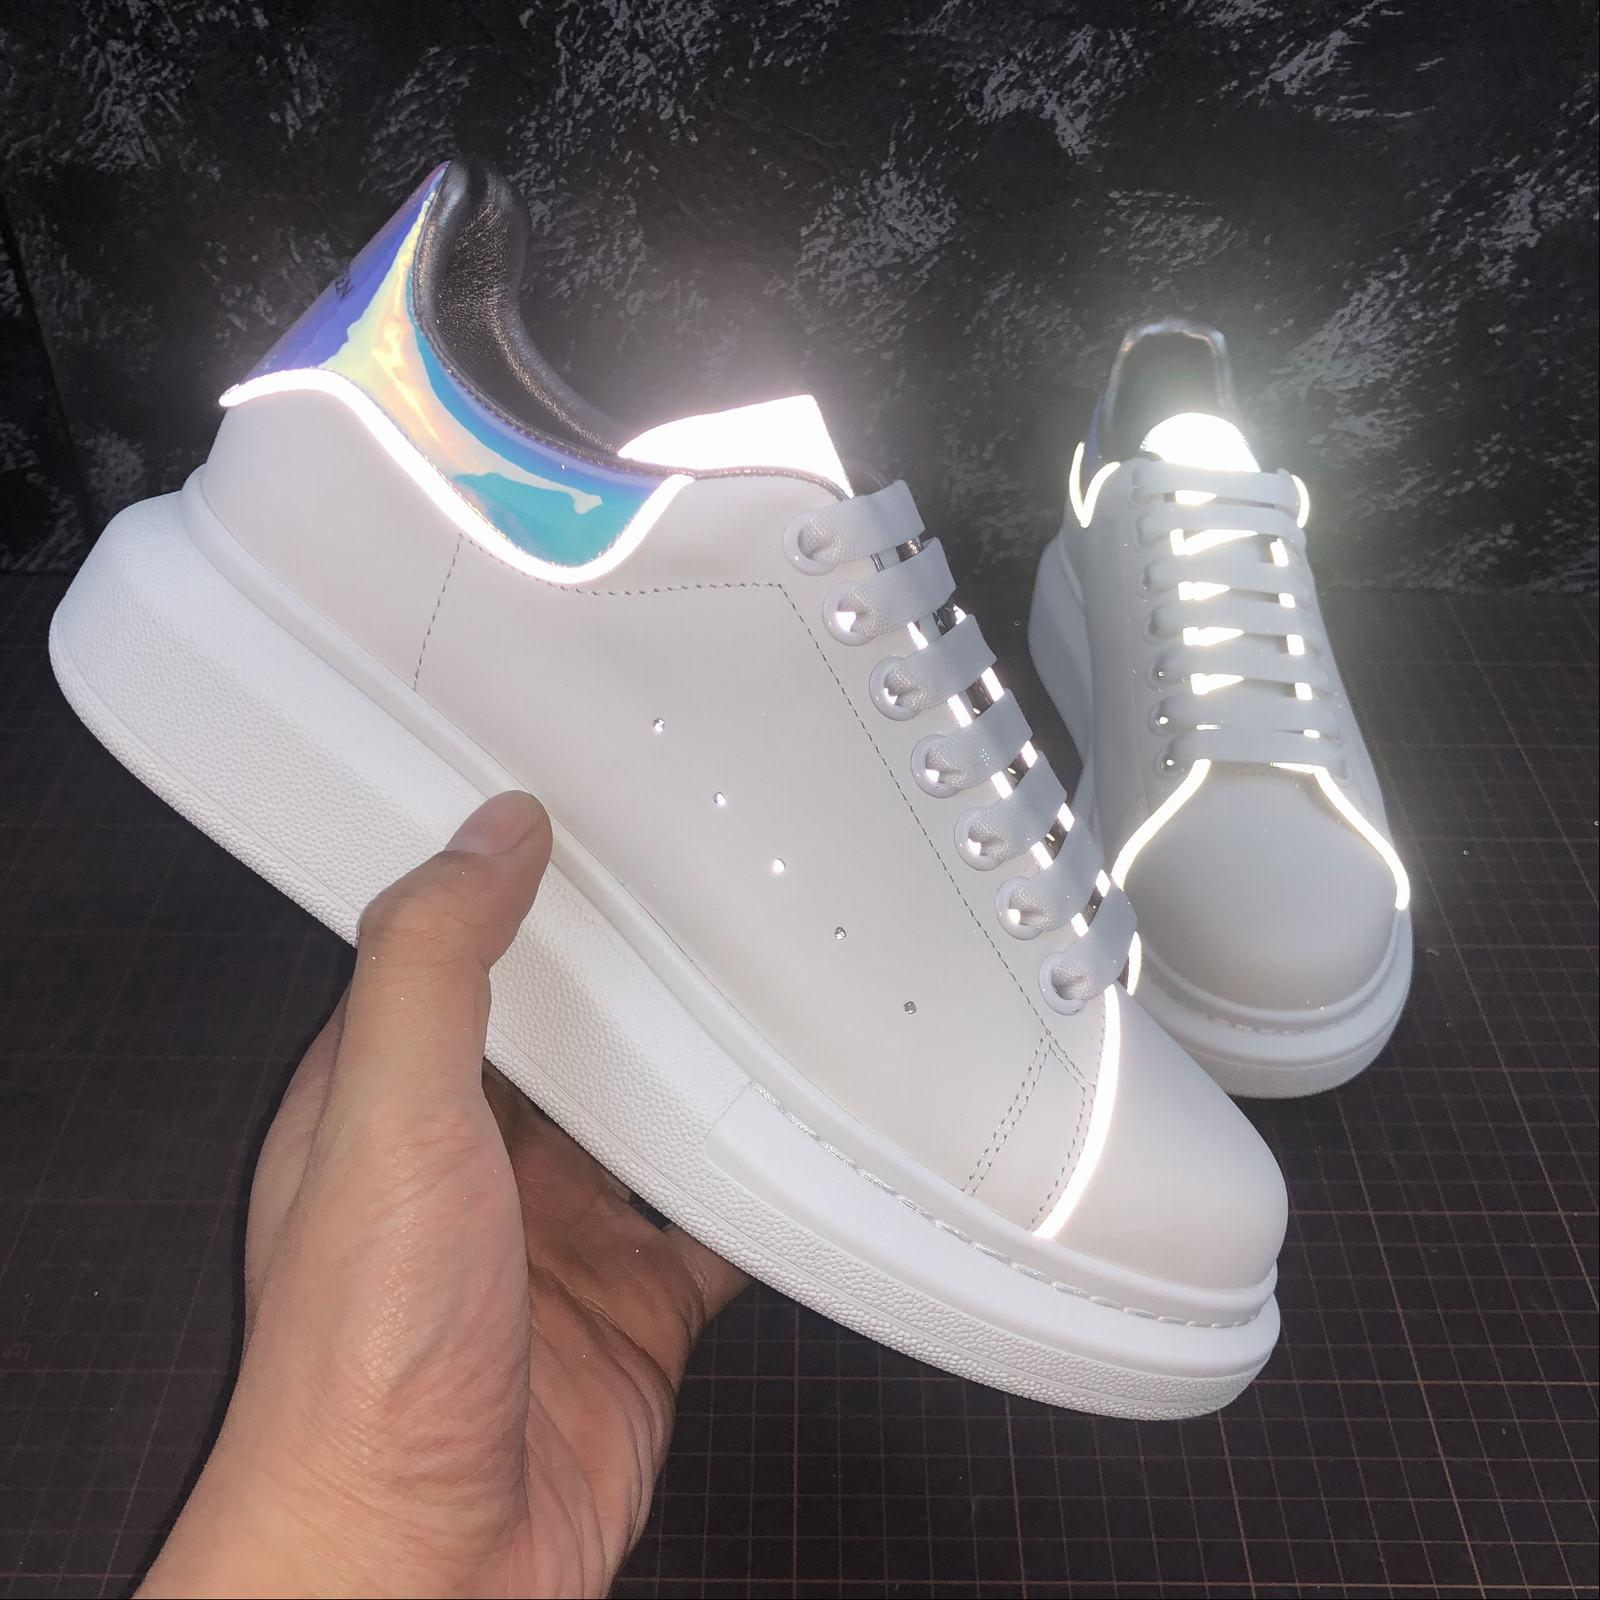 finest selection f5f31 a1492 Alexander McQueen 3M Reflective men and women shoes sneakers 1size fashion  luxury scarpe designer uomo donna sandali scarpe sneakers femmes ...